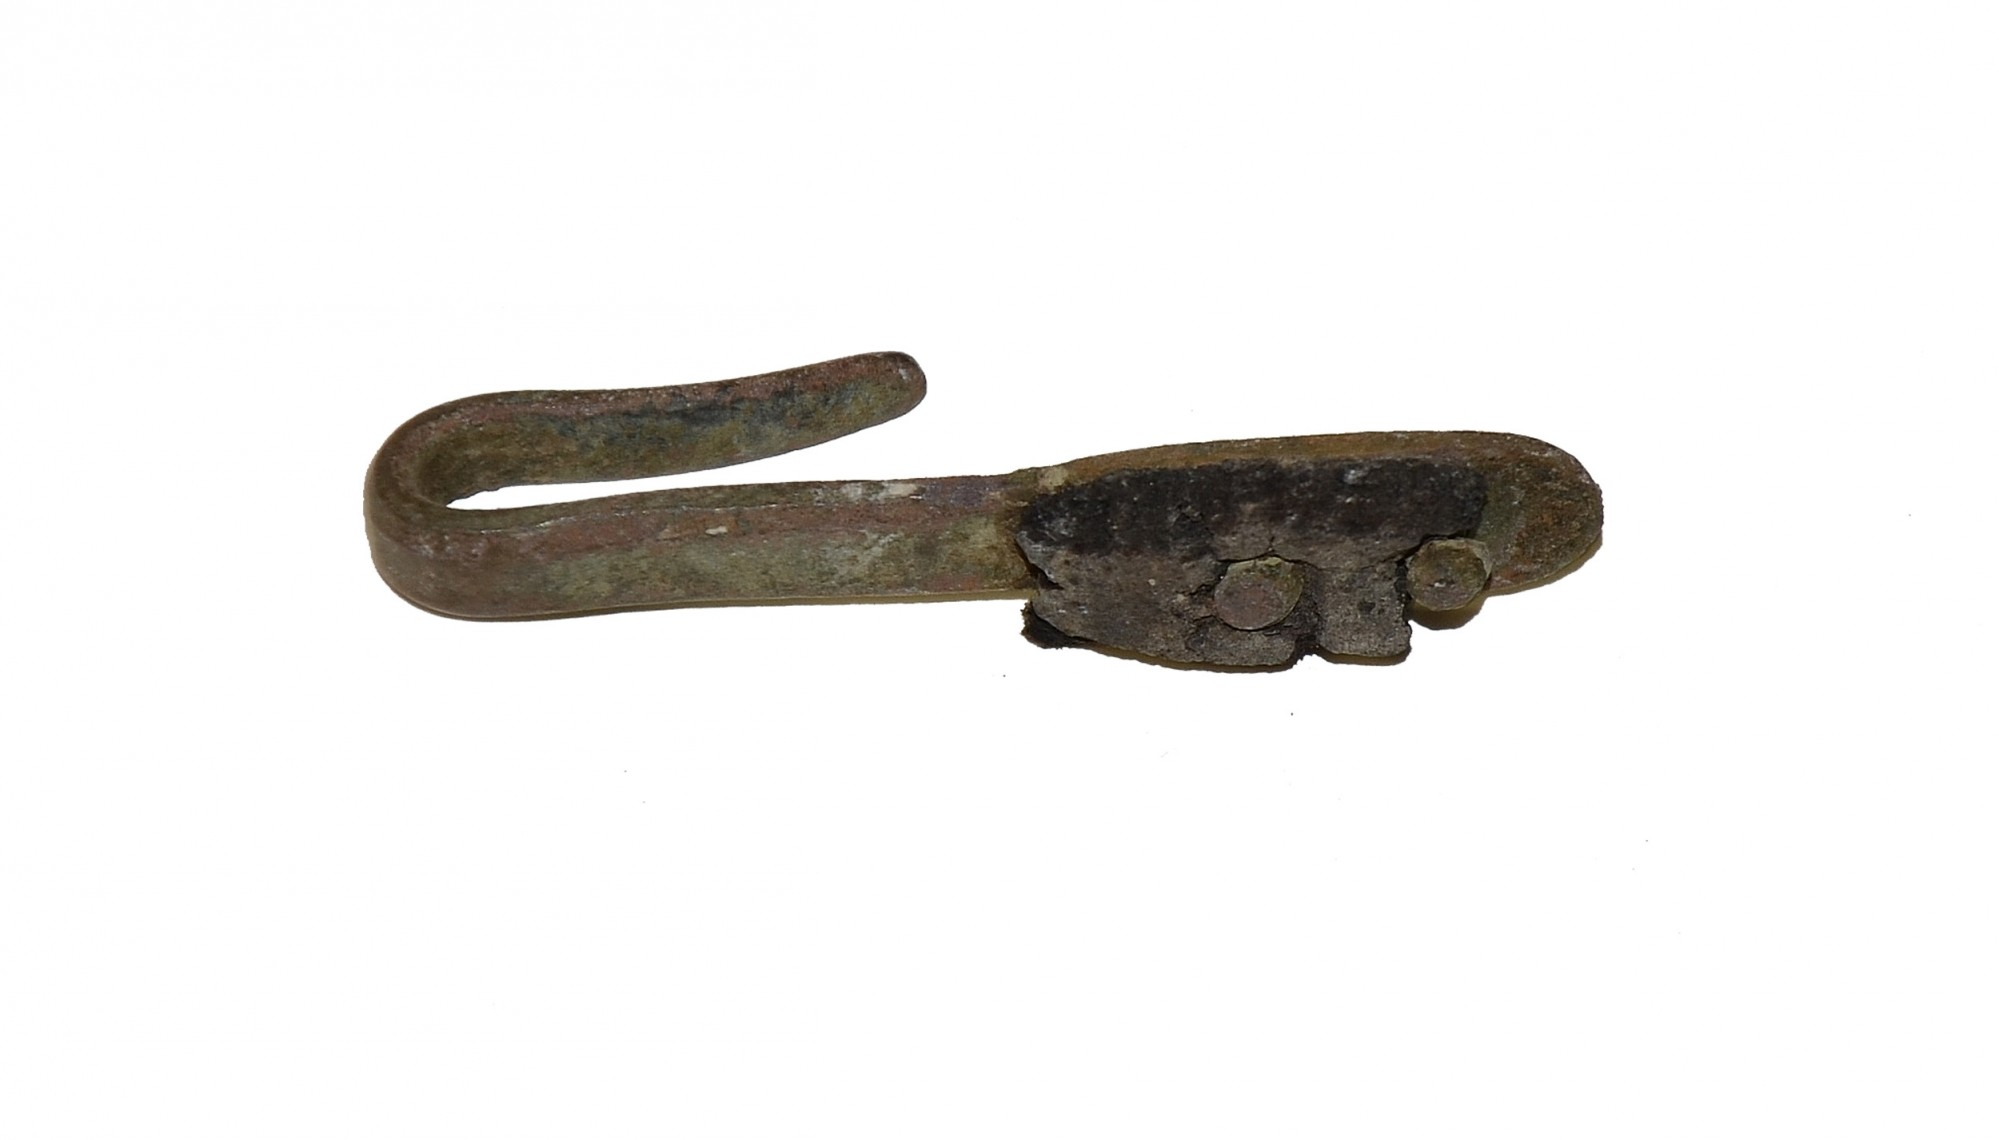 US/CS BRASS MUSKET SLING HOOK ADJUSTER RECOVERED ON THE SHERFY FARM, GETTYSBURG